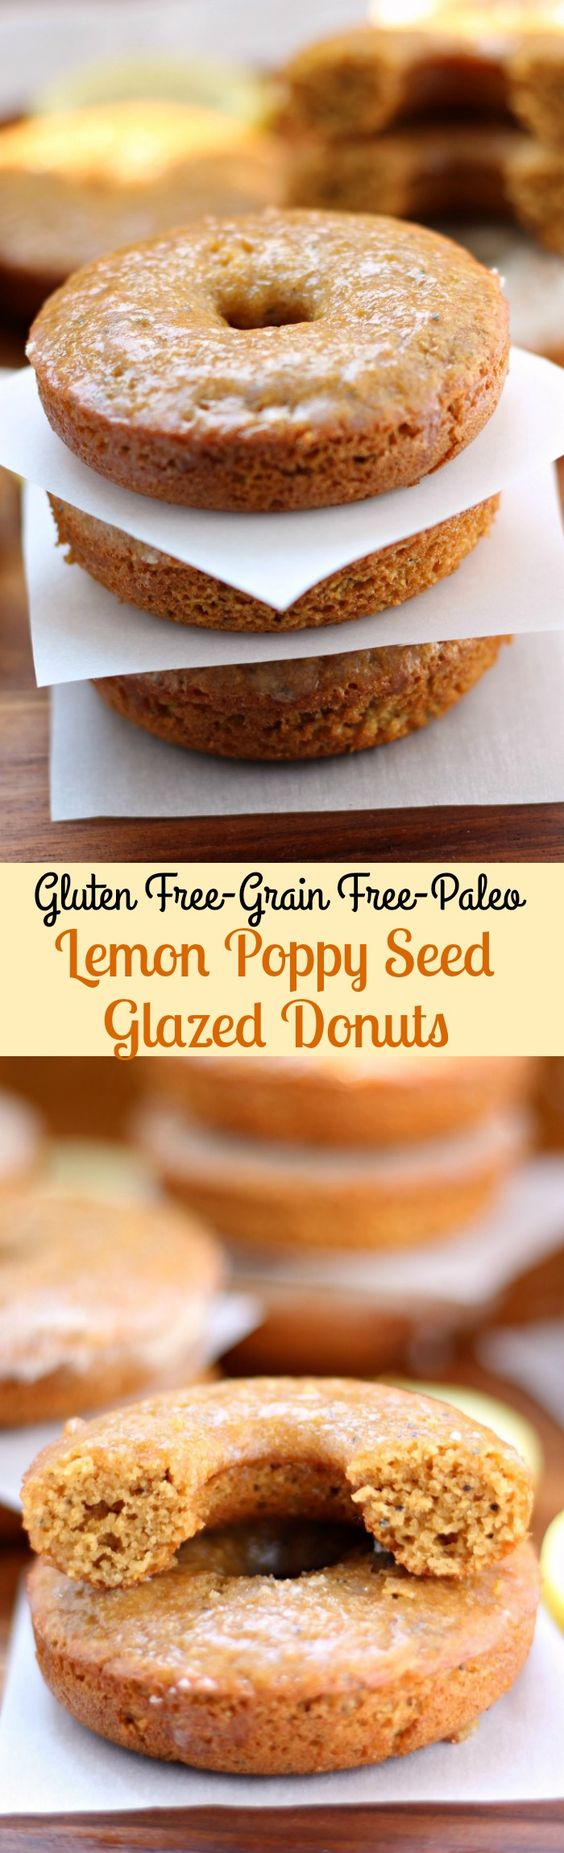 Paleo Lemon Poppy Seed Glazed Donuts | Recipe | Blanched ...